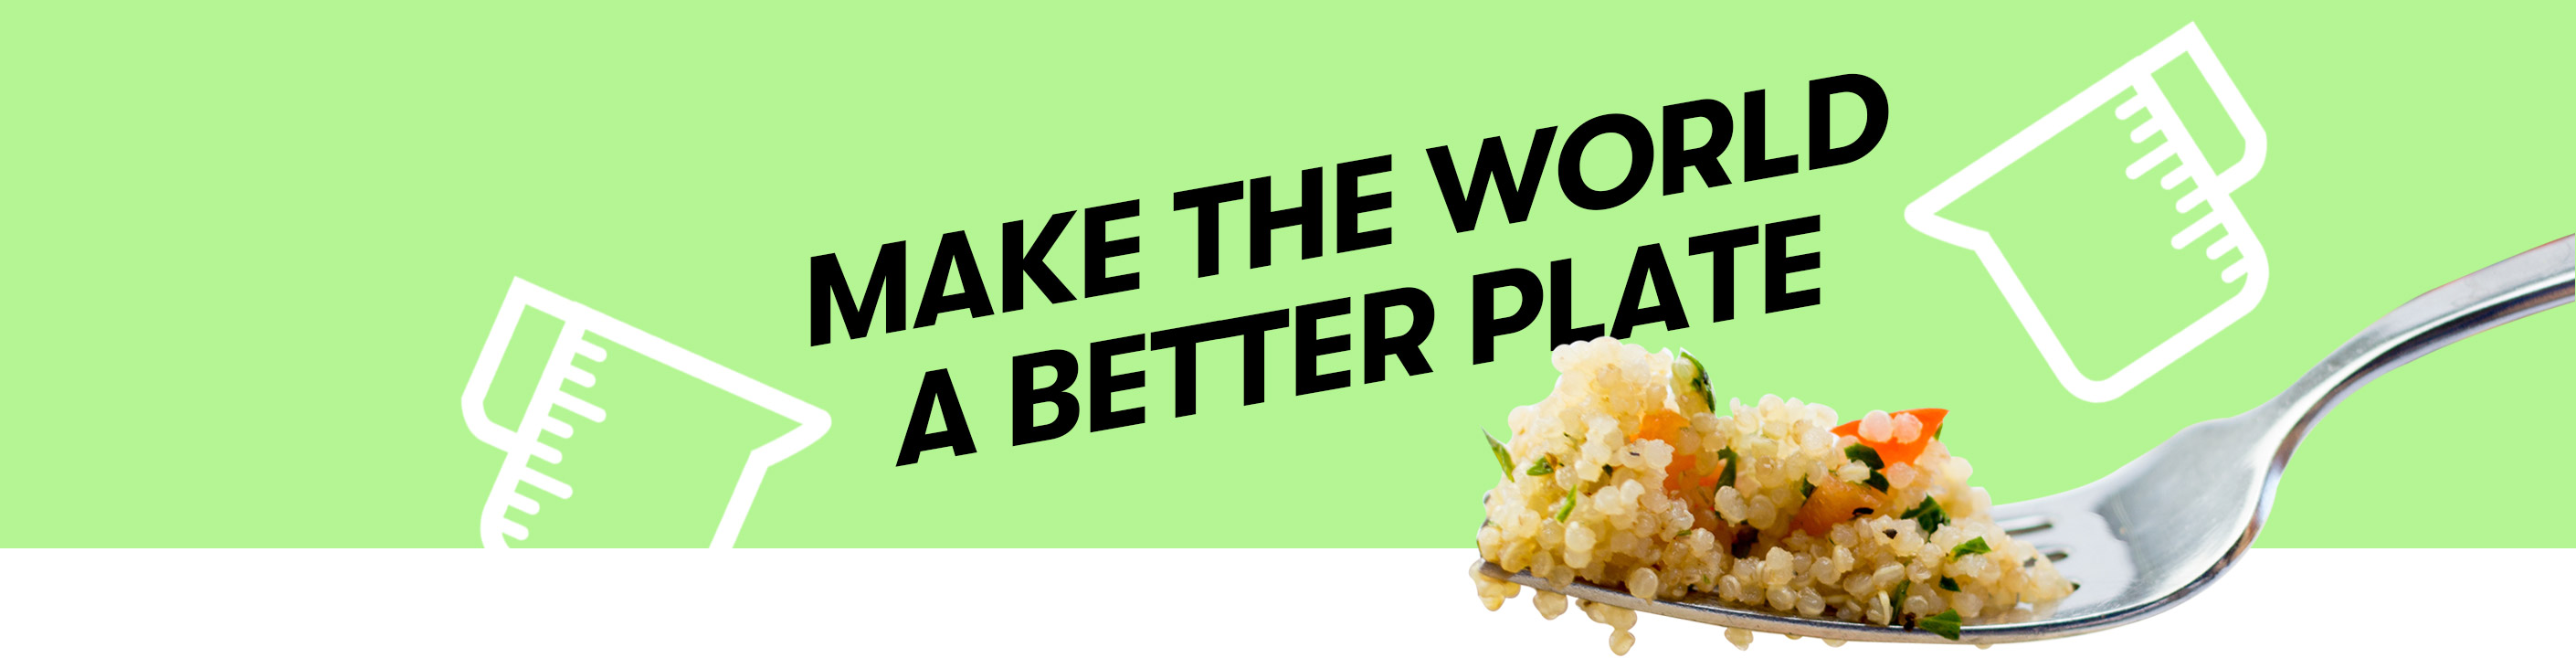 Make The World A Better Plate